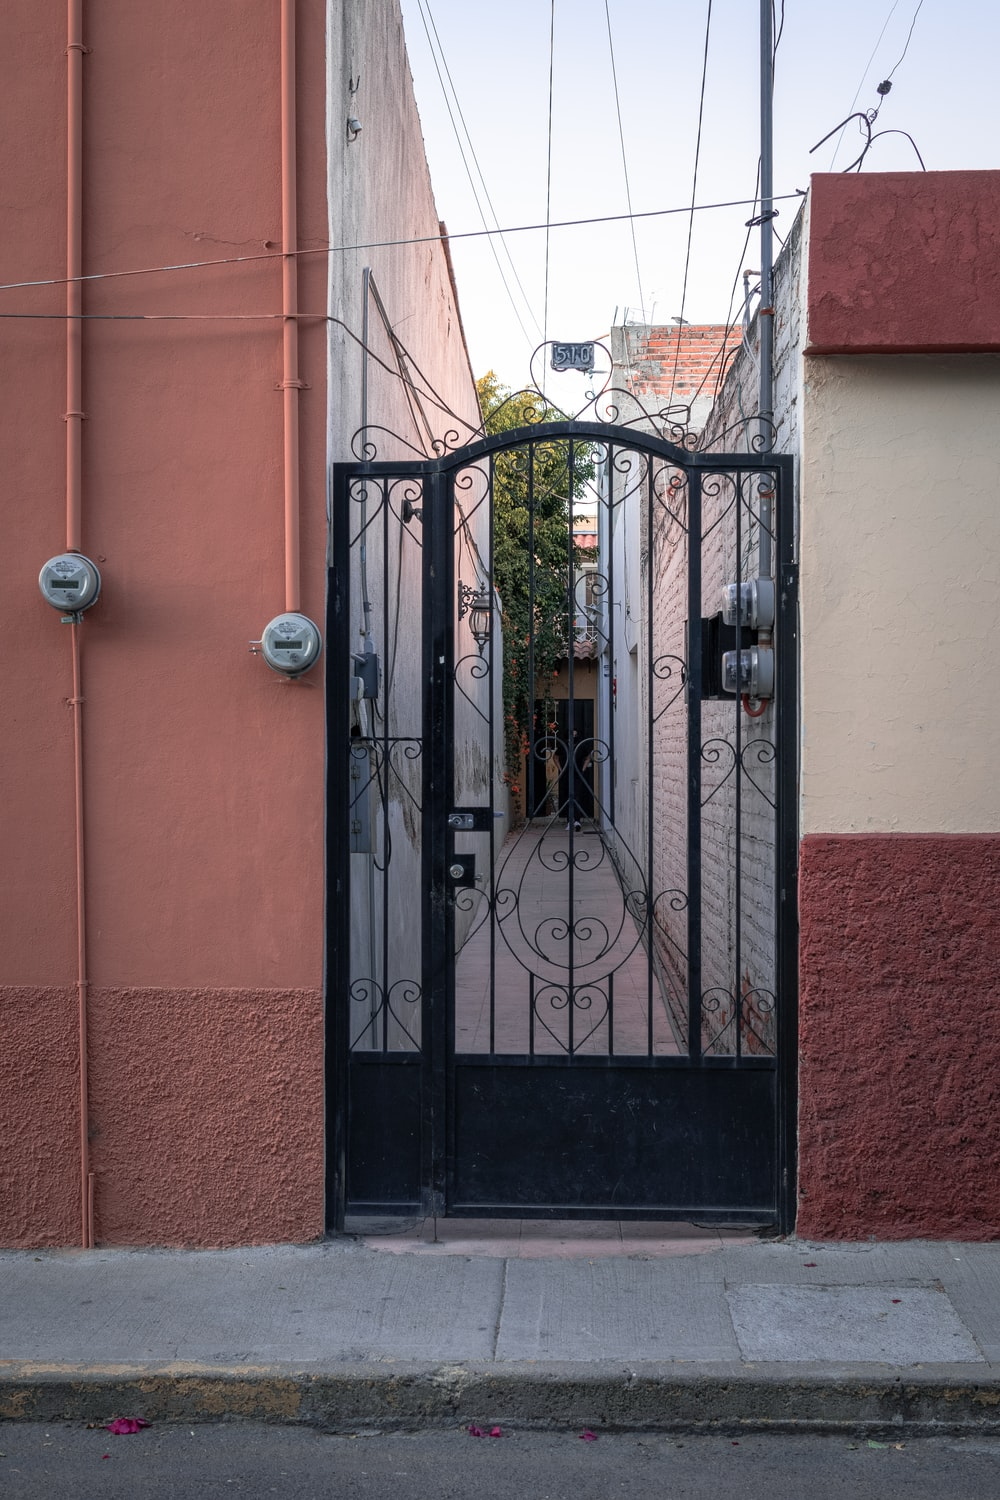 black metal gate on red concrete building